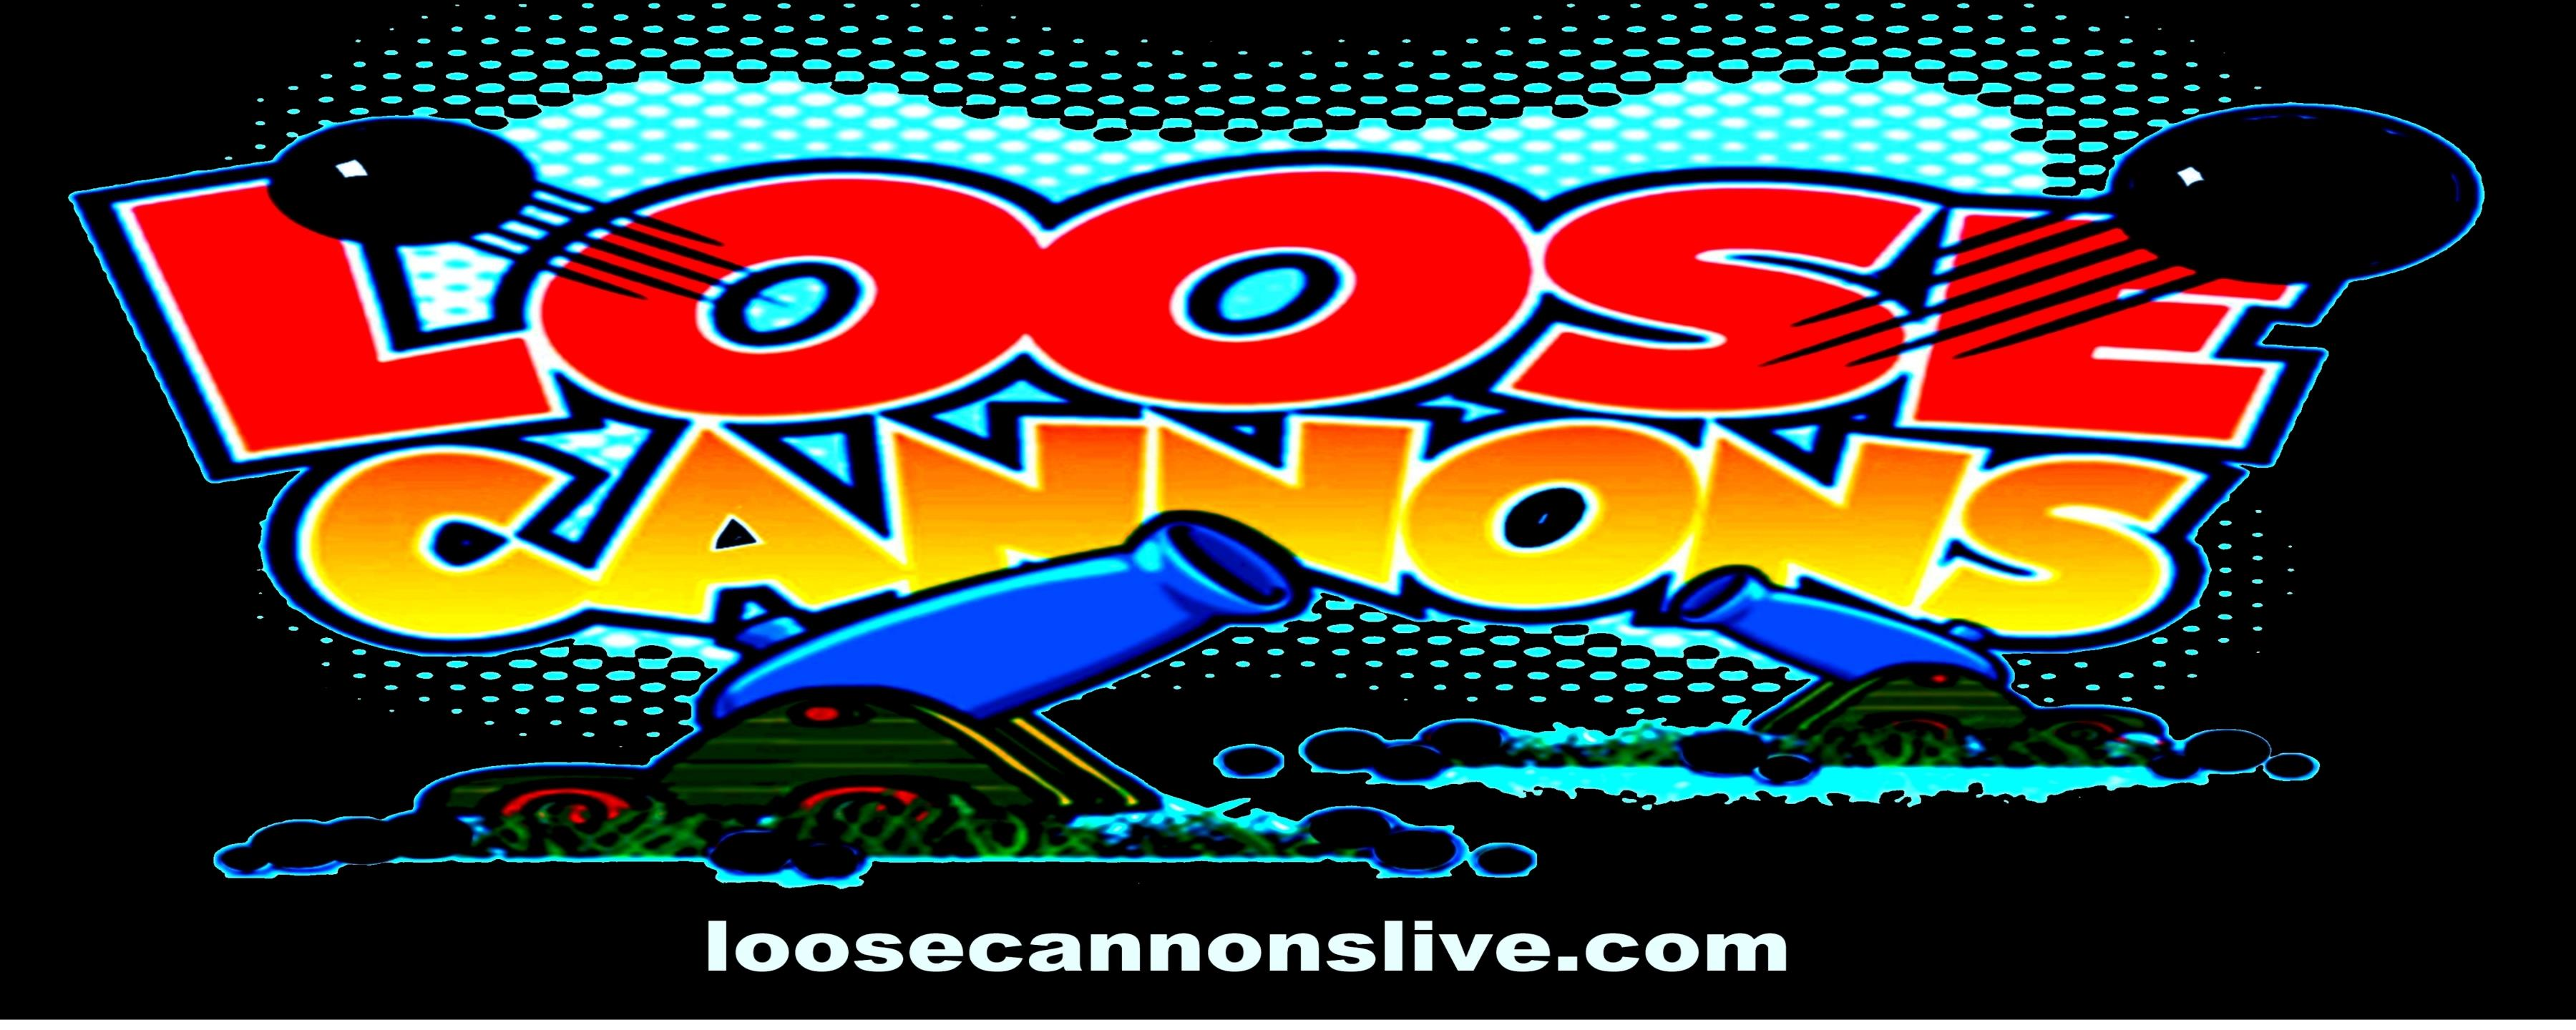 Loose Cannons Band (fka Midlife Crisis)